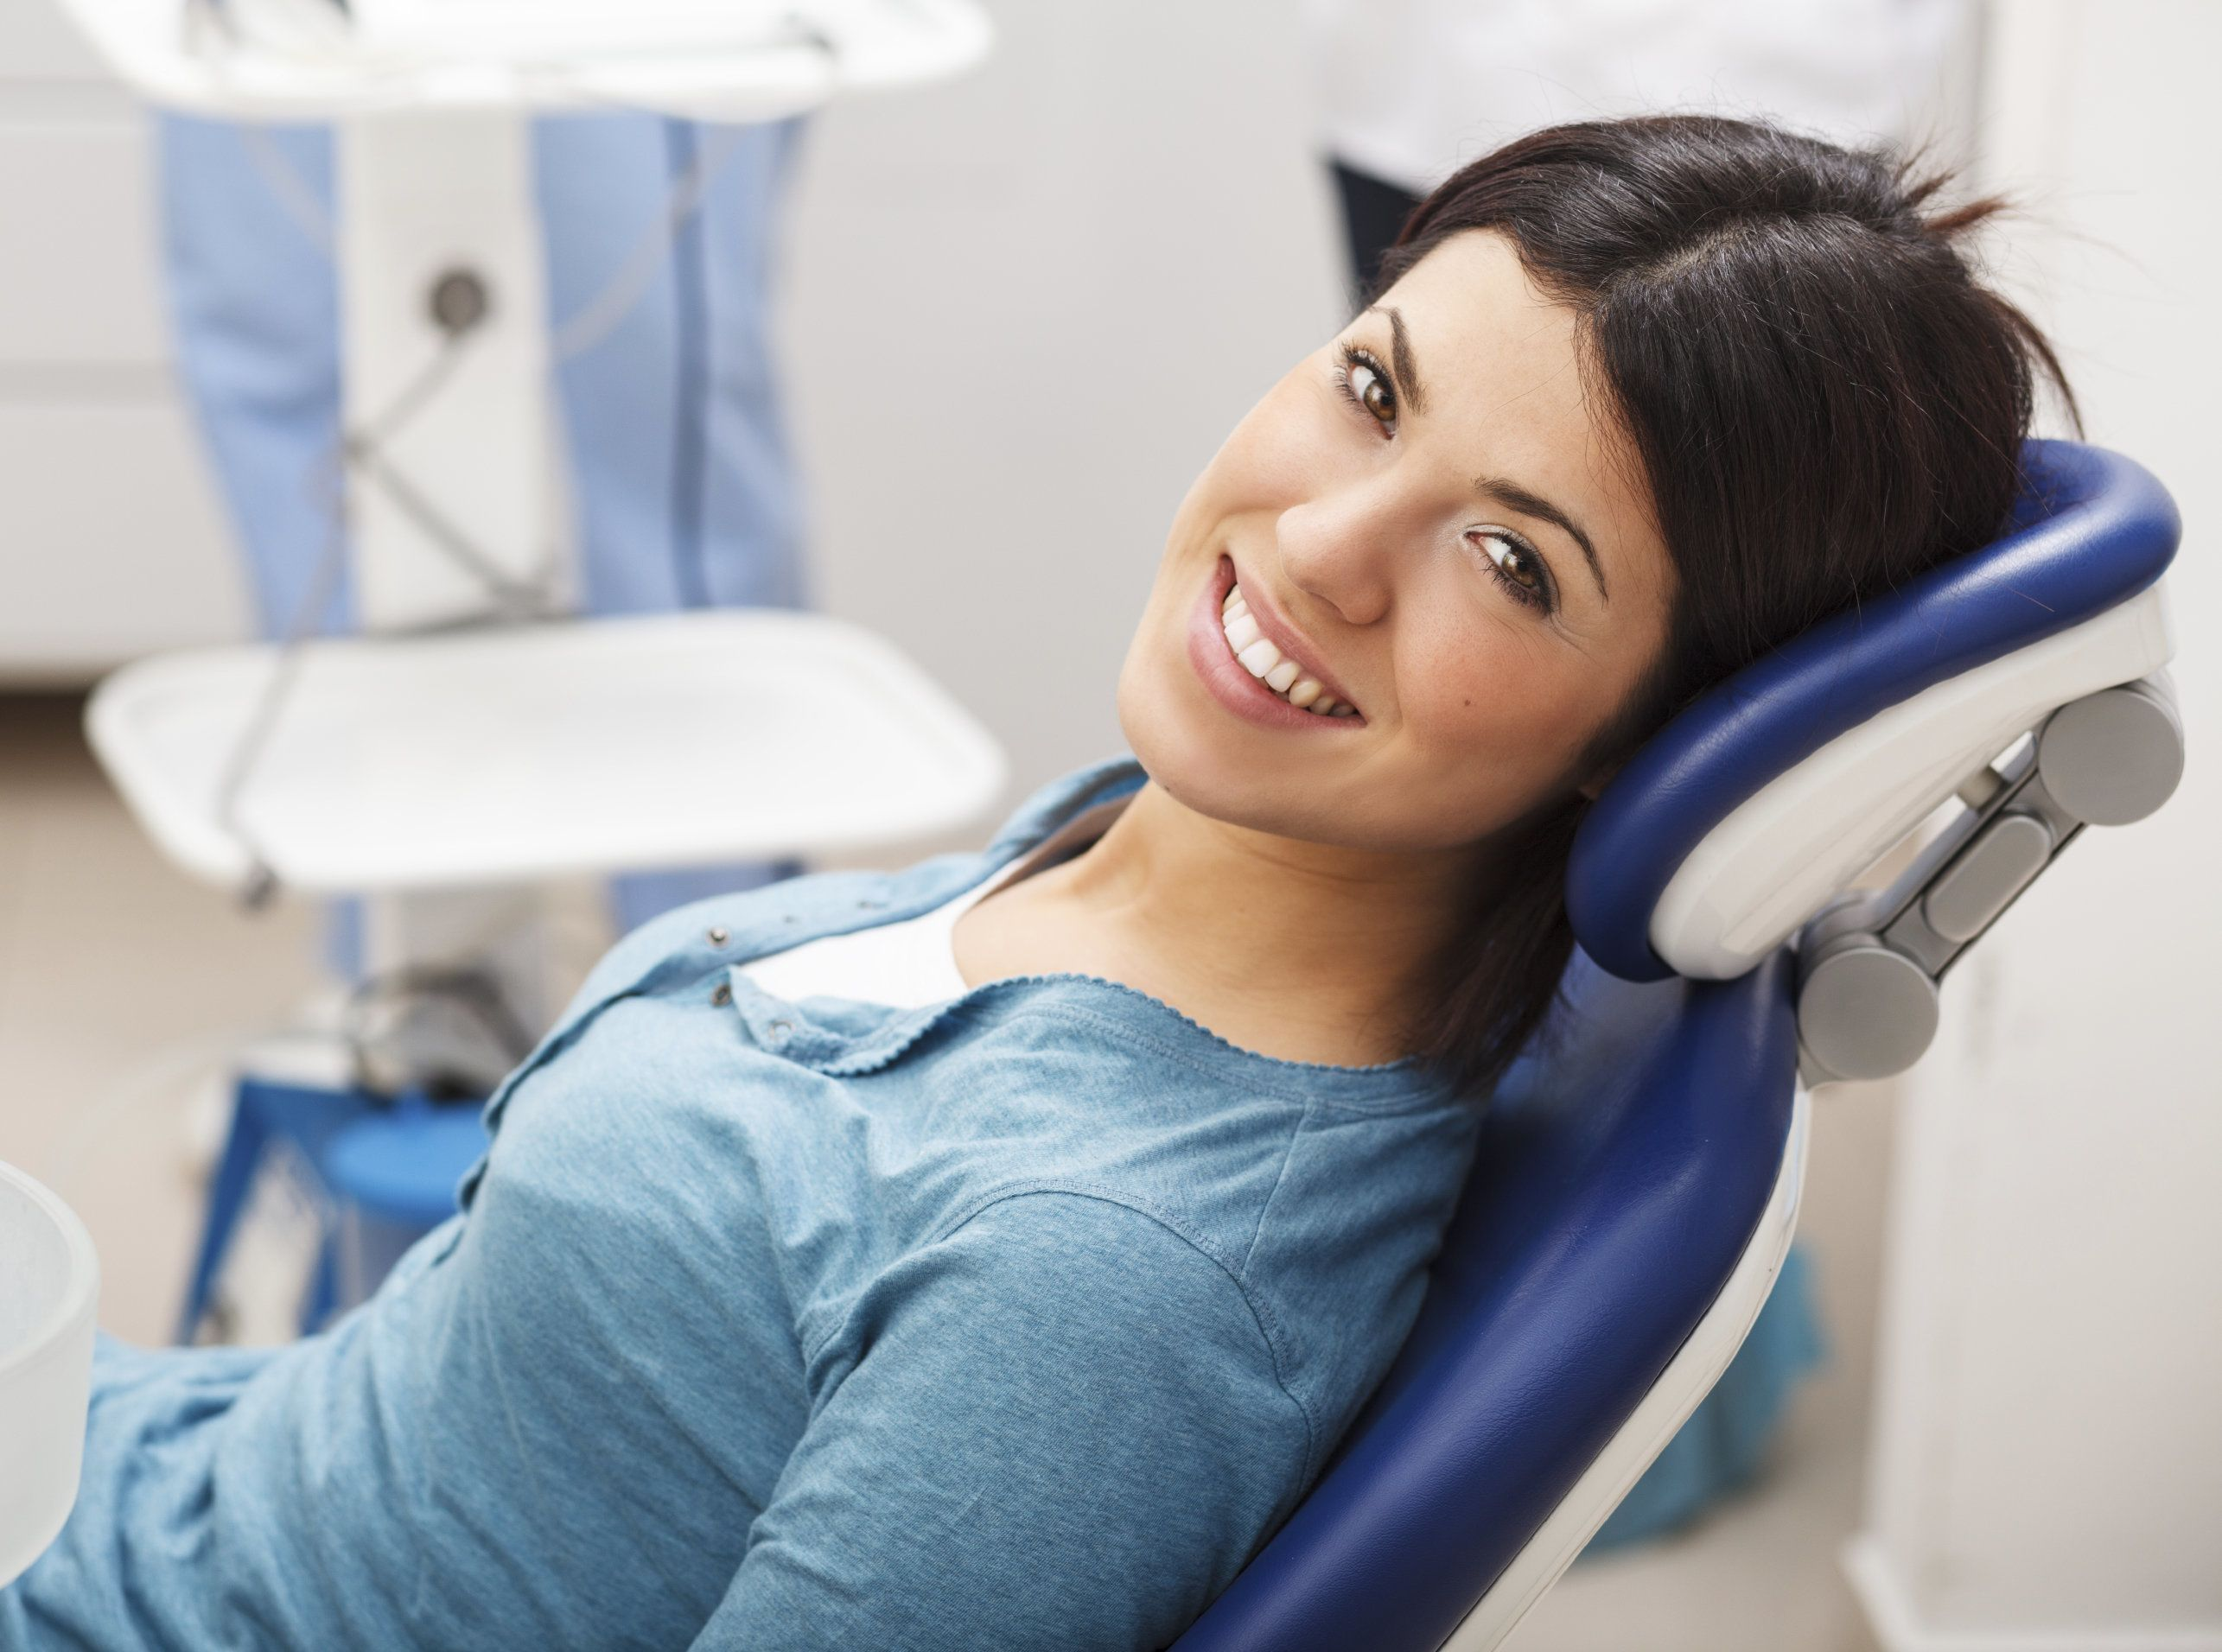 A woman with a healthy smile sitting in a dental chair